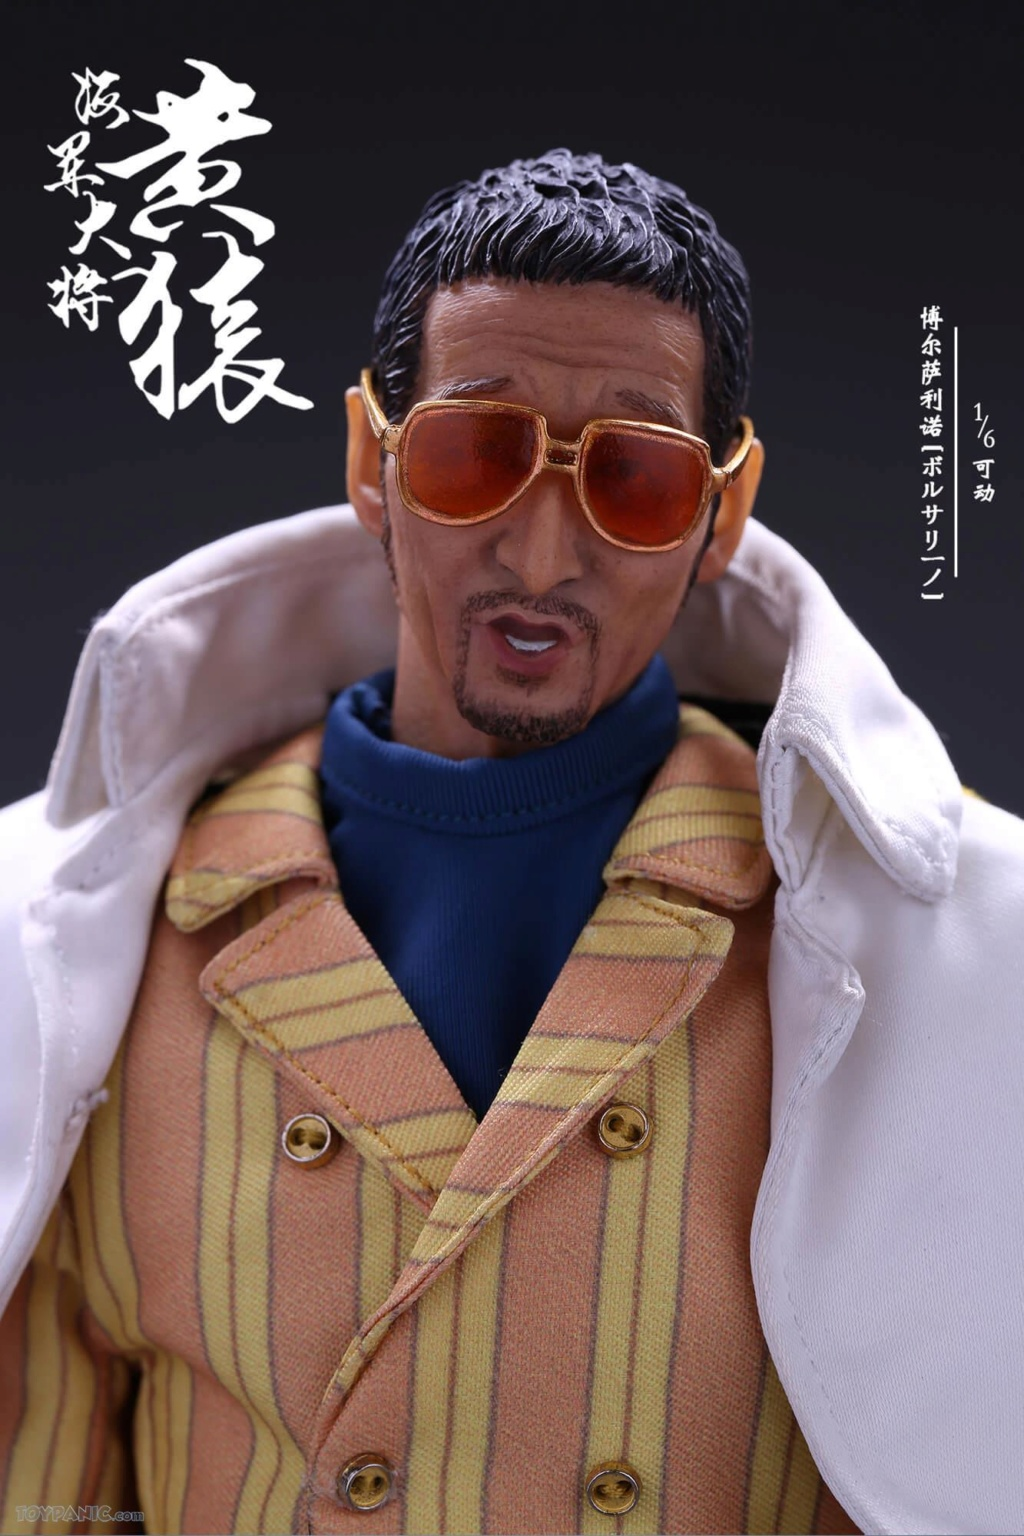 JokerToys - NEW PRODUCT: 1/6 Scale One Piece - Borsalino (Kizaru Yellow Monkey)  From JOKER TOYS  Code: JOK1810201801 10192041